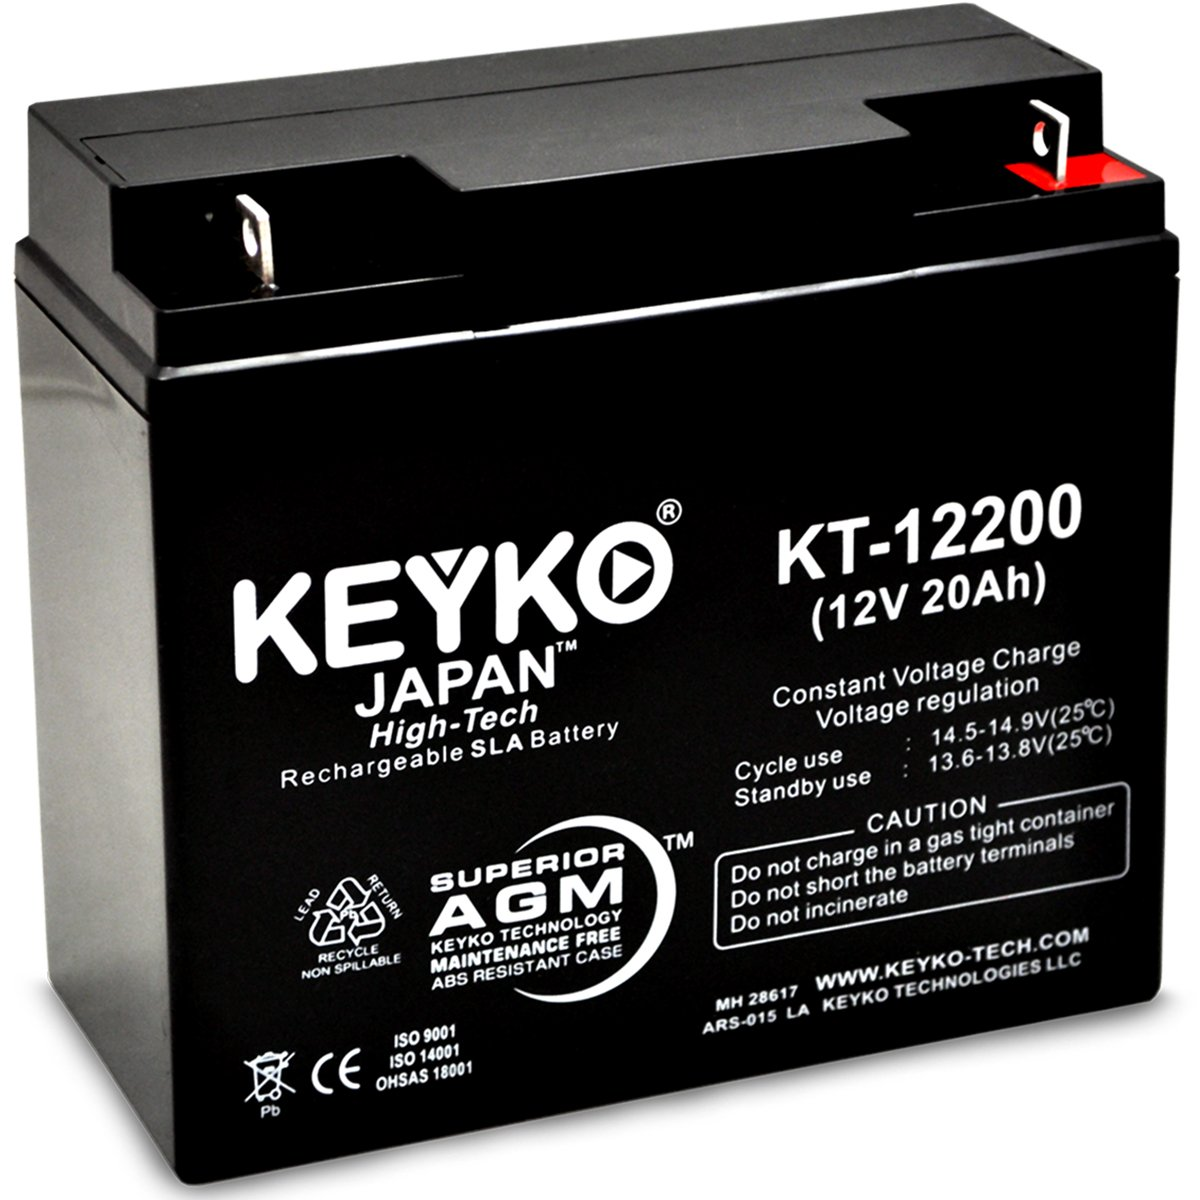 Solar Booster Pac ES2500 Jump Starter Battery 12V 22Ah SLA Sealed Lead Acid Rechargeable AGM Replacement Battery Genuine KEYKO (W/ L-1 Terminal) by KEYKO